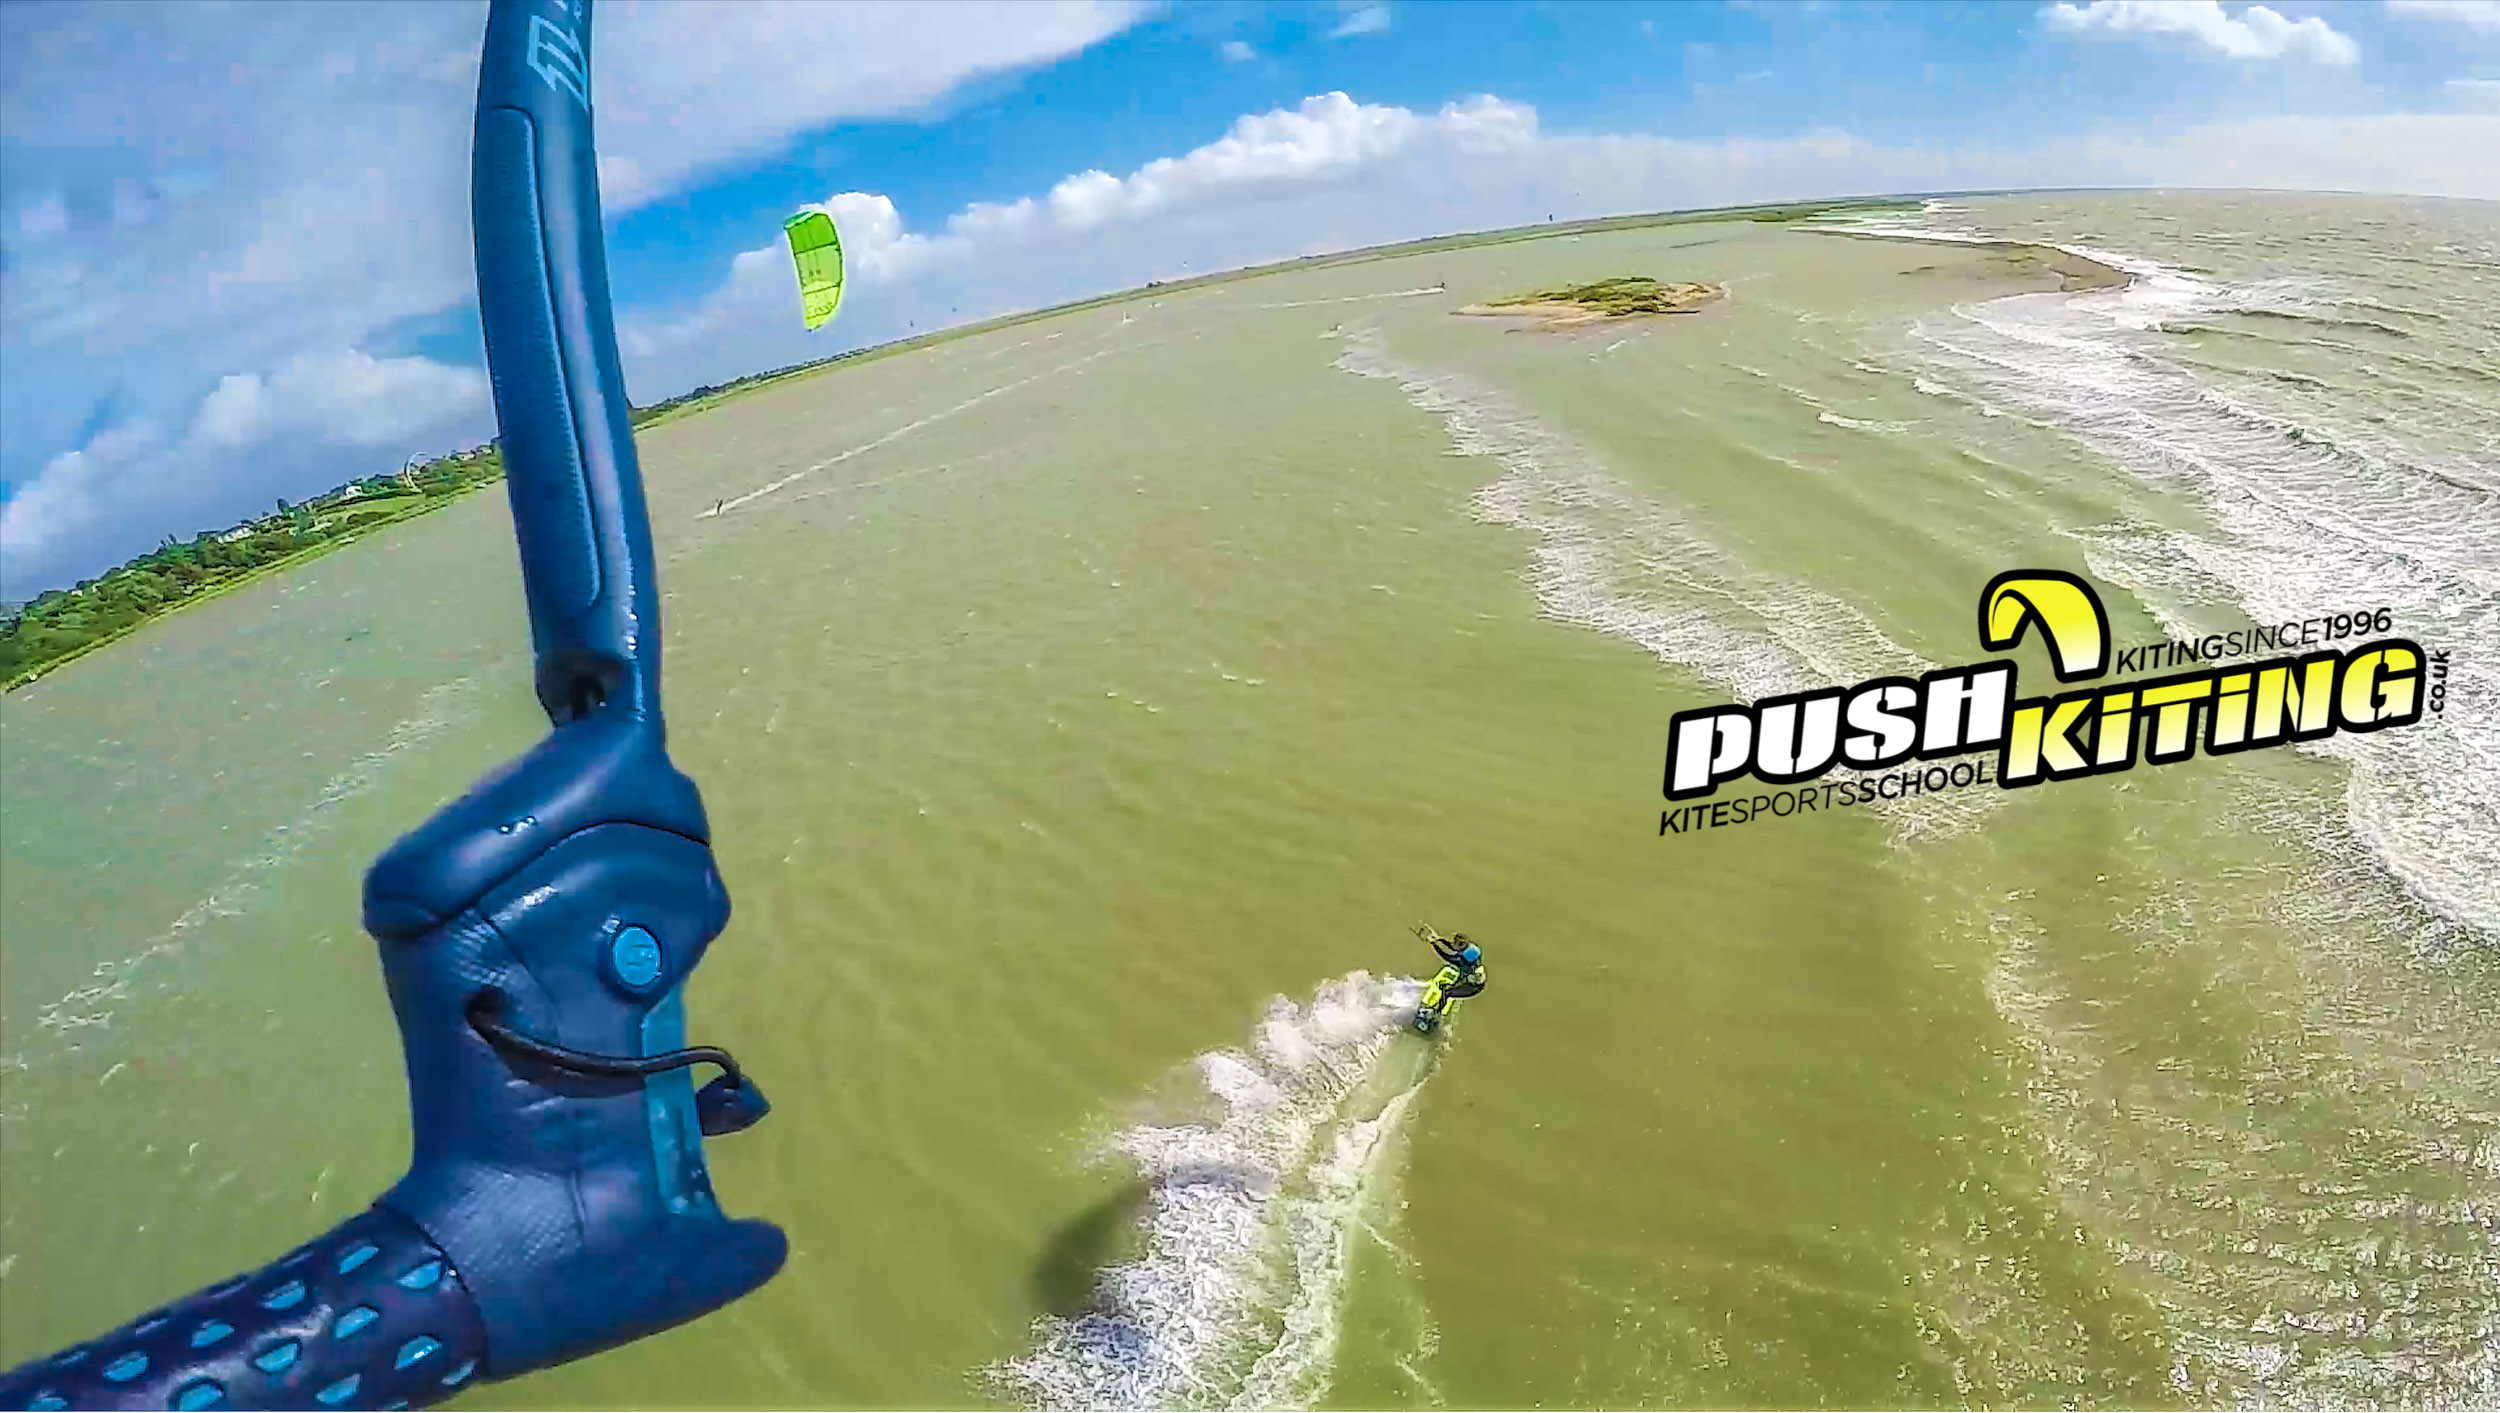 The Magic of Kiteboarding with PUSH Kiting Funstructors! Ultimate kiteboarding session